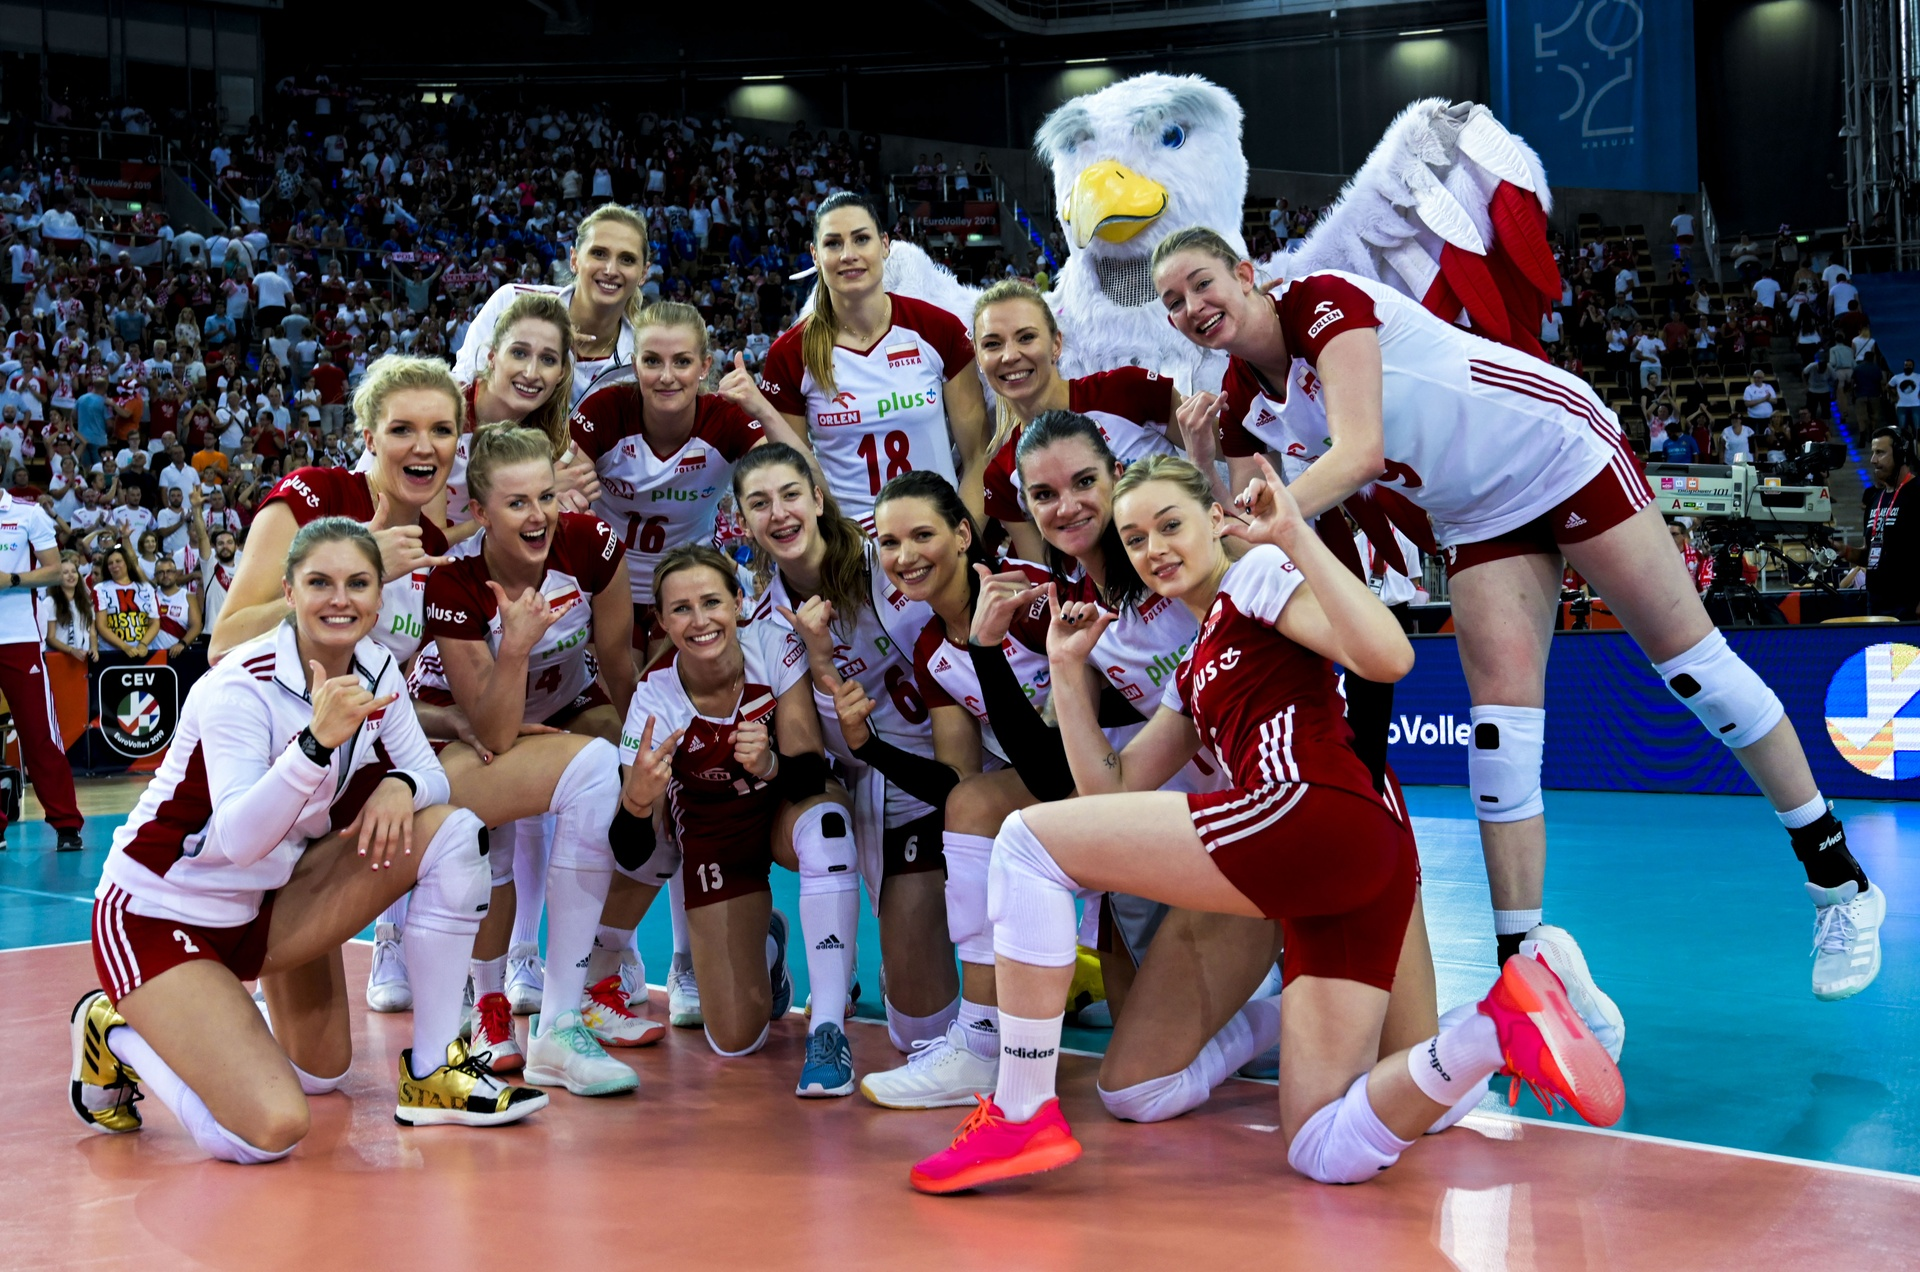 Pool play ends on high note at #EuroVolleyW, shapes up exciting 8th Finals